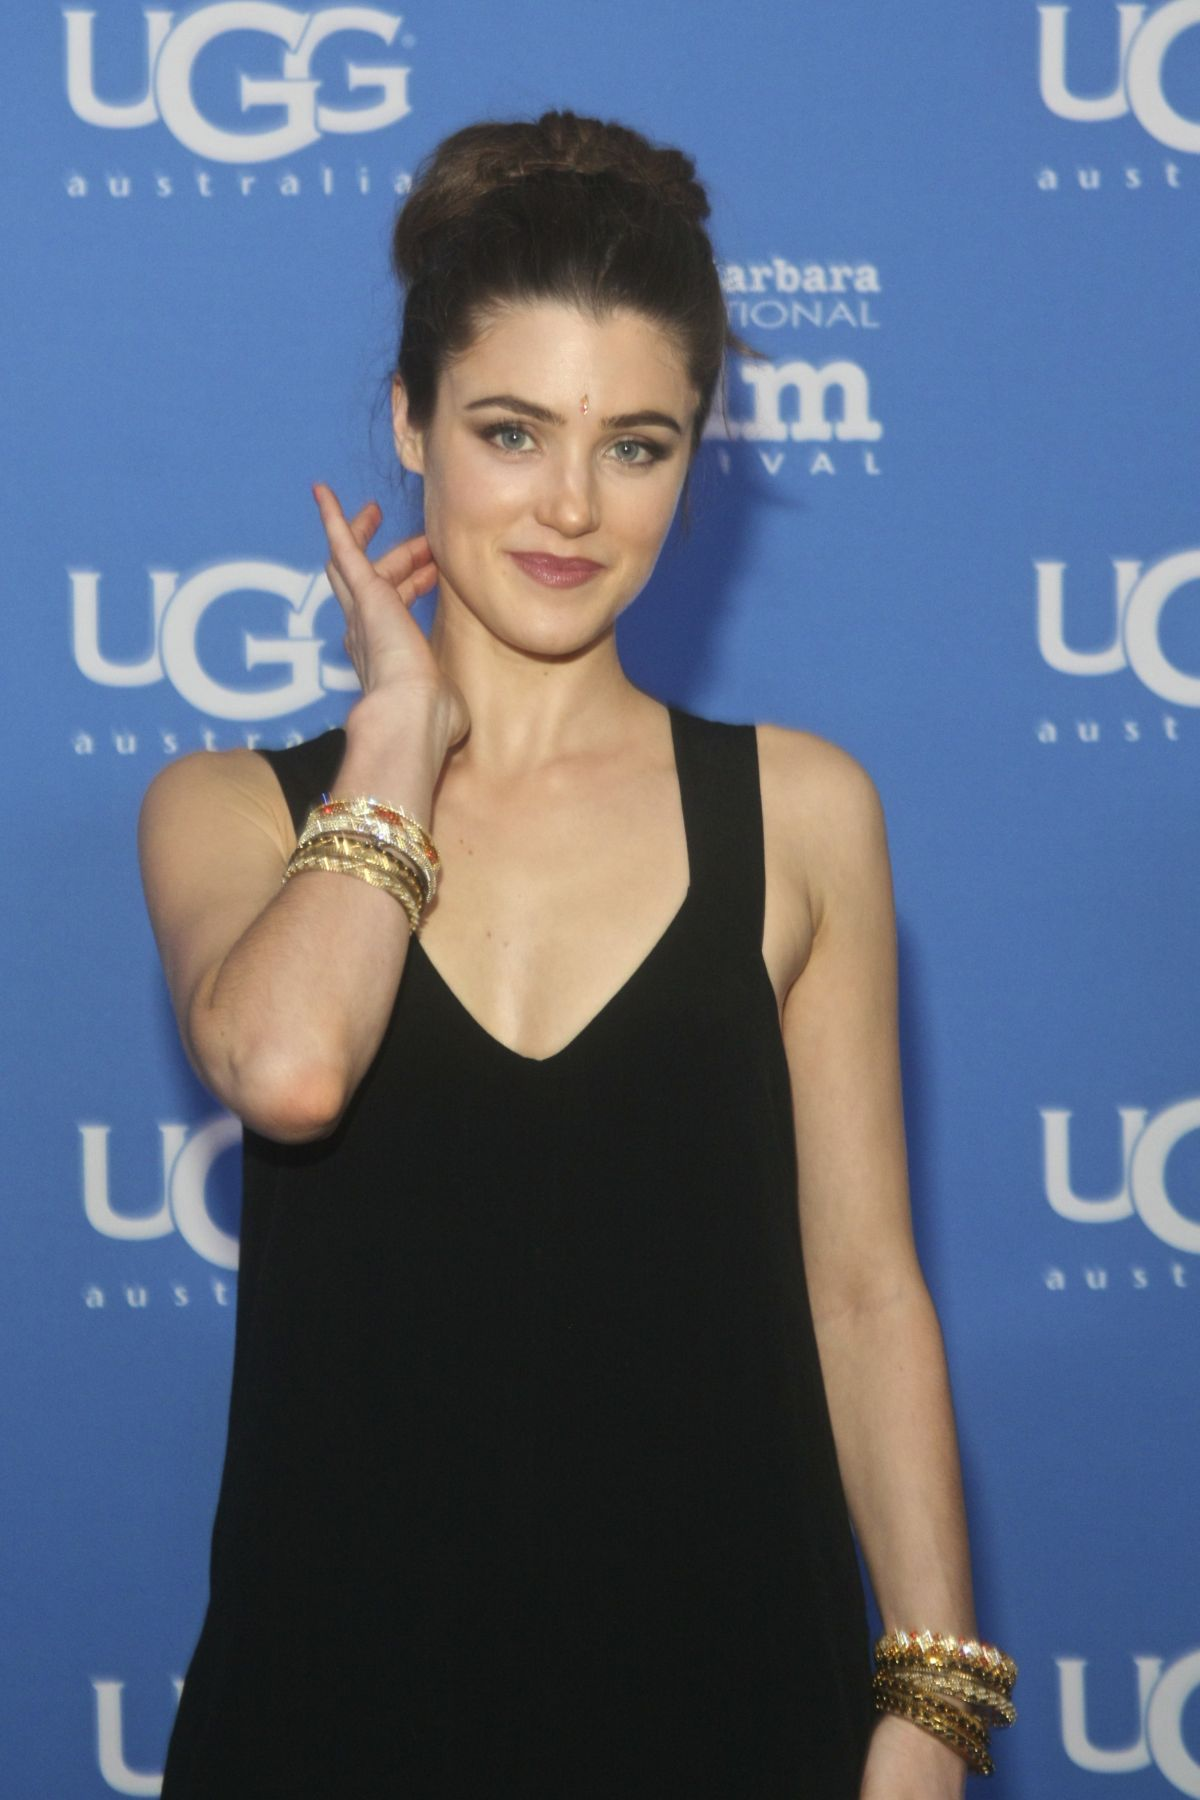 LUCY GRIFFITHS at 2015 Santa Barbara International Film Festival